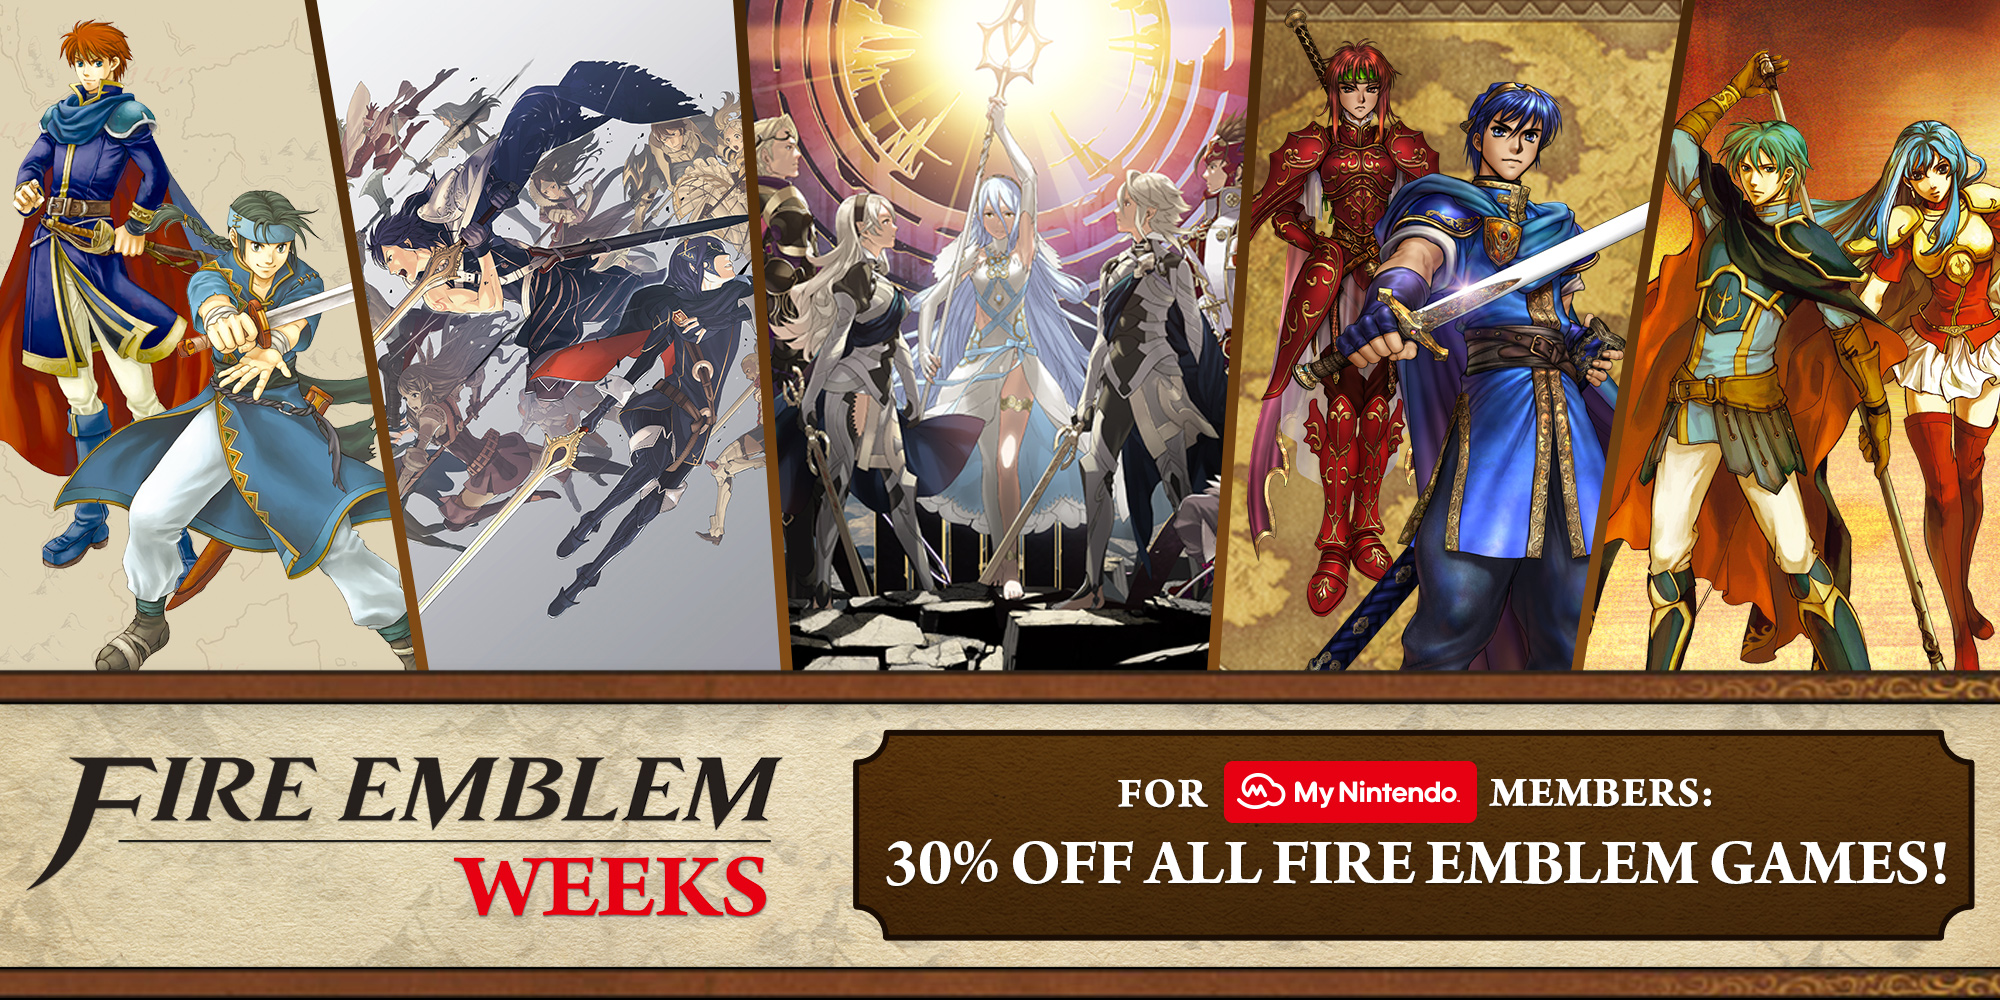 https://cdn02.nintendo-europe.com/media/images/10_share_images/others_3/nintendo_eshop_5/H2x1_FireEmblemWeeks2017Sale_enGB.jpg